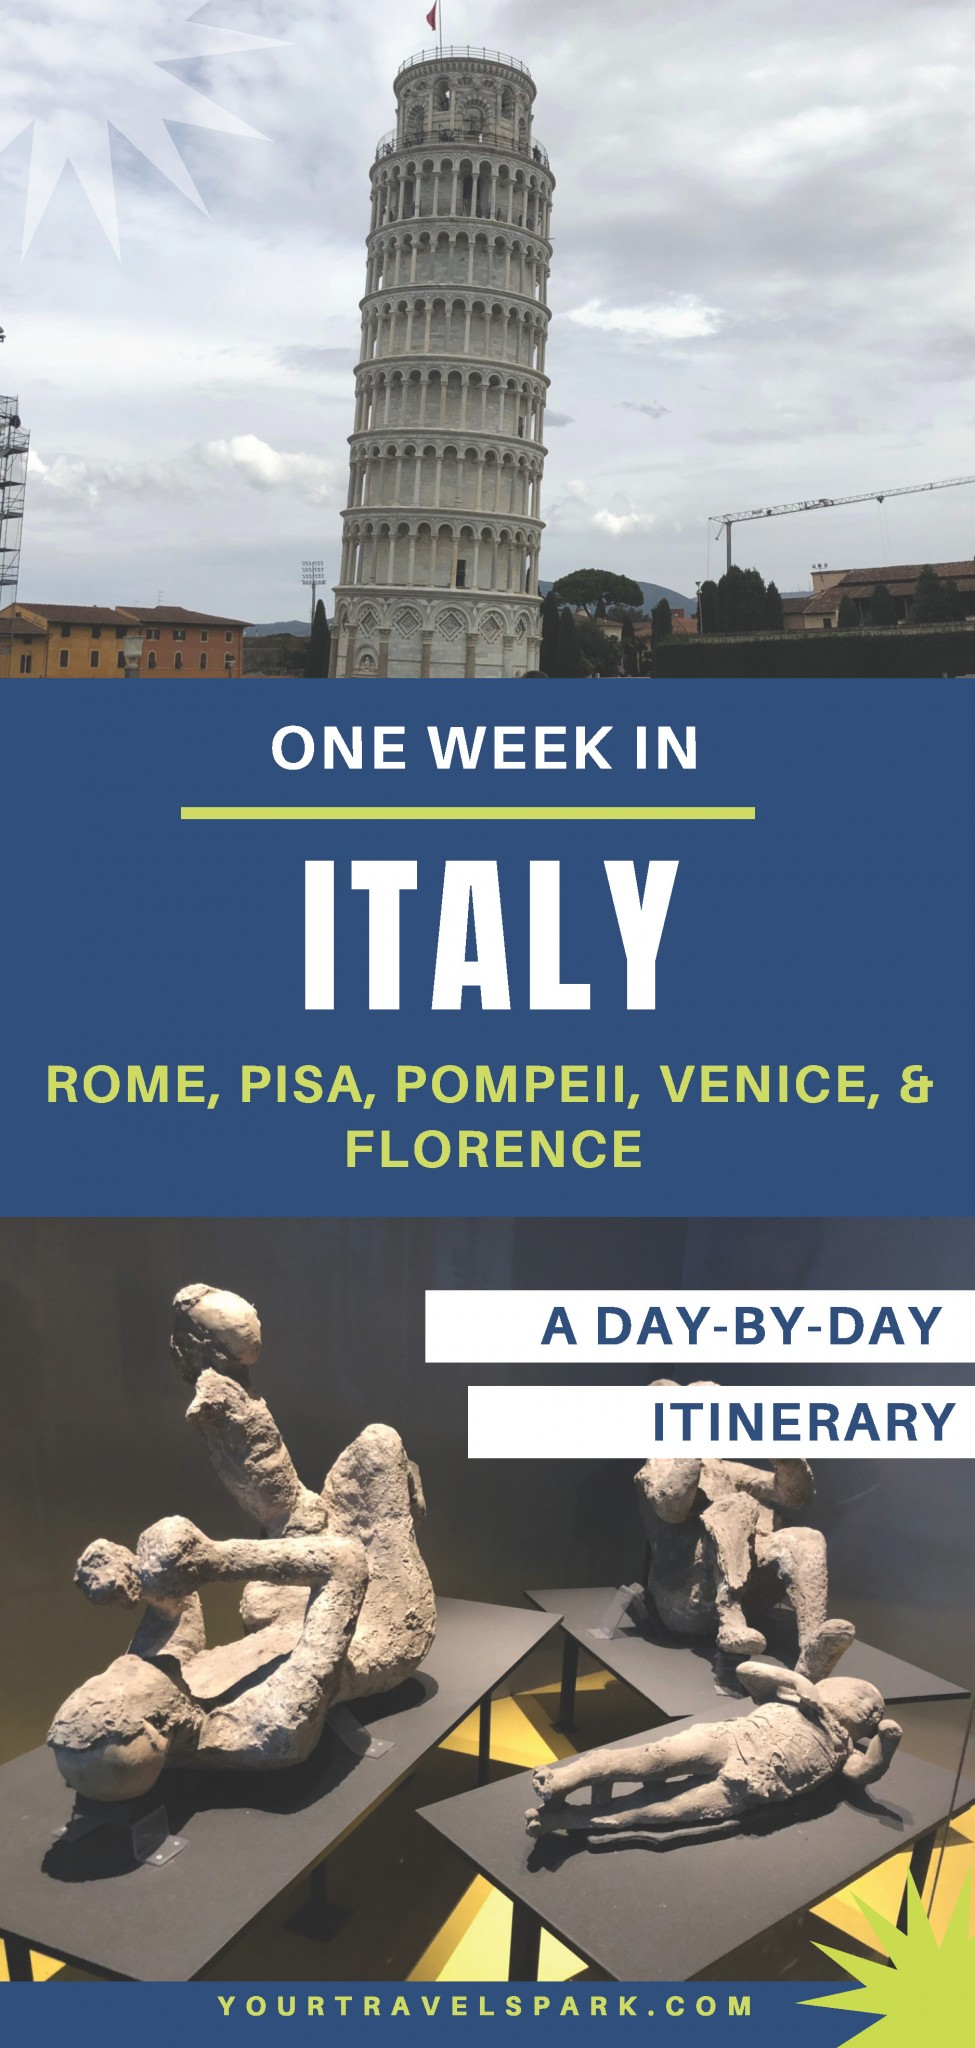 Even if you are only spending one week in Italy, you can still visit quite a few cities. Here is our 1 week in Italy itinerary, including Rome, Pisa, Pompeii, Florence, and Venice. #italy #italia #italyitinerary #italiaitinerary #rome #roma #pompeii #mountvesuvius #mtvesuvius #vesuvius #florence #venice #romeitinerary #florenceitinerary #veniceitinerary #pompeiiitinerary #1weekinitaly #oneweekinitaly